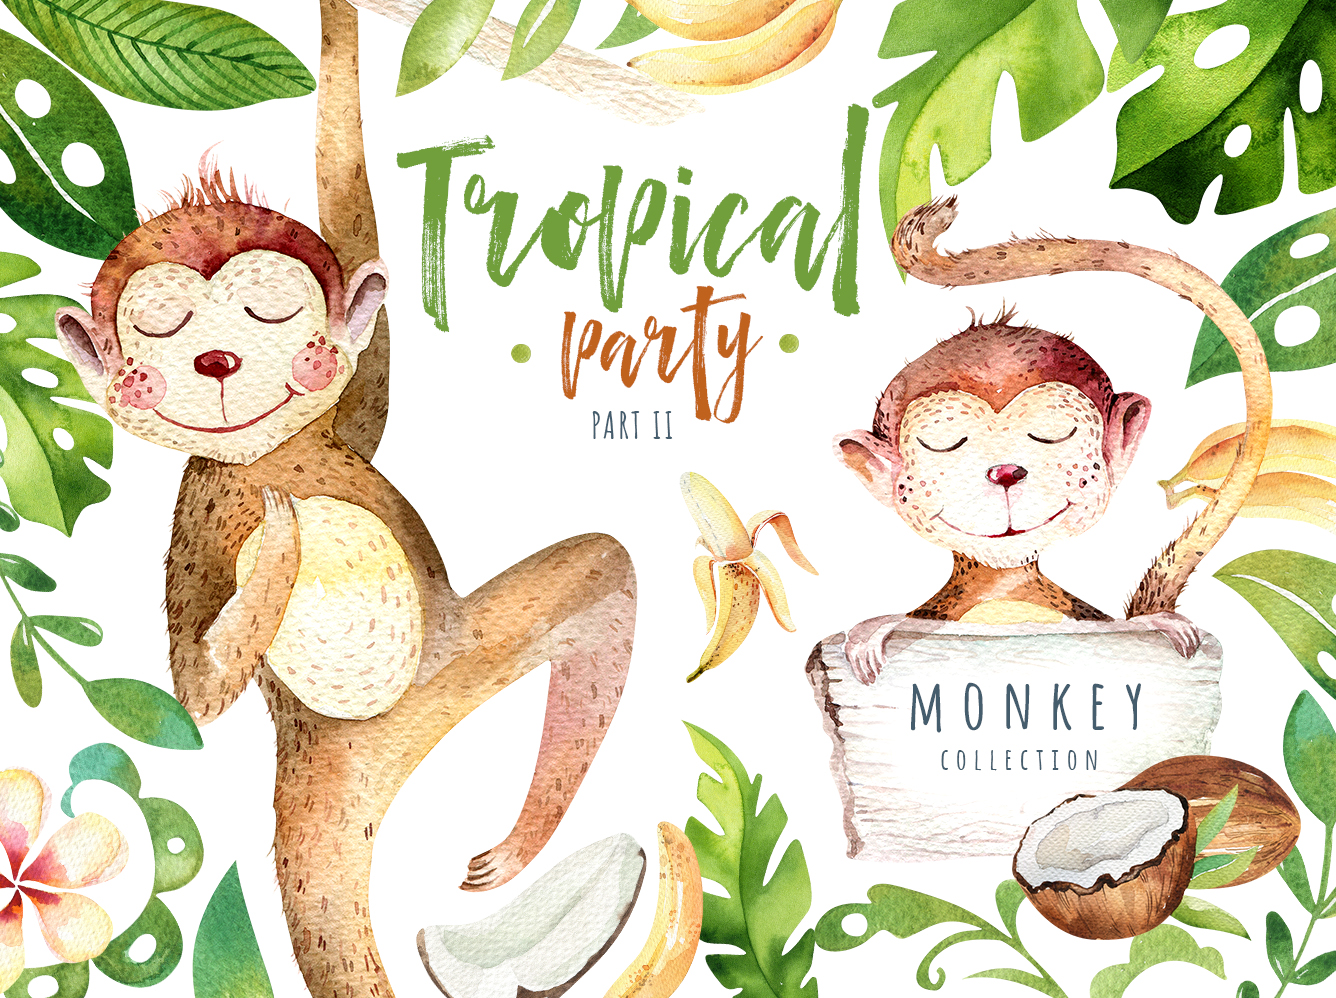 Tropical party II. Monkey collection example image 1